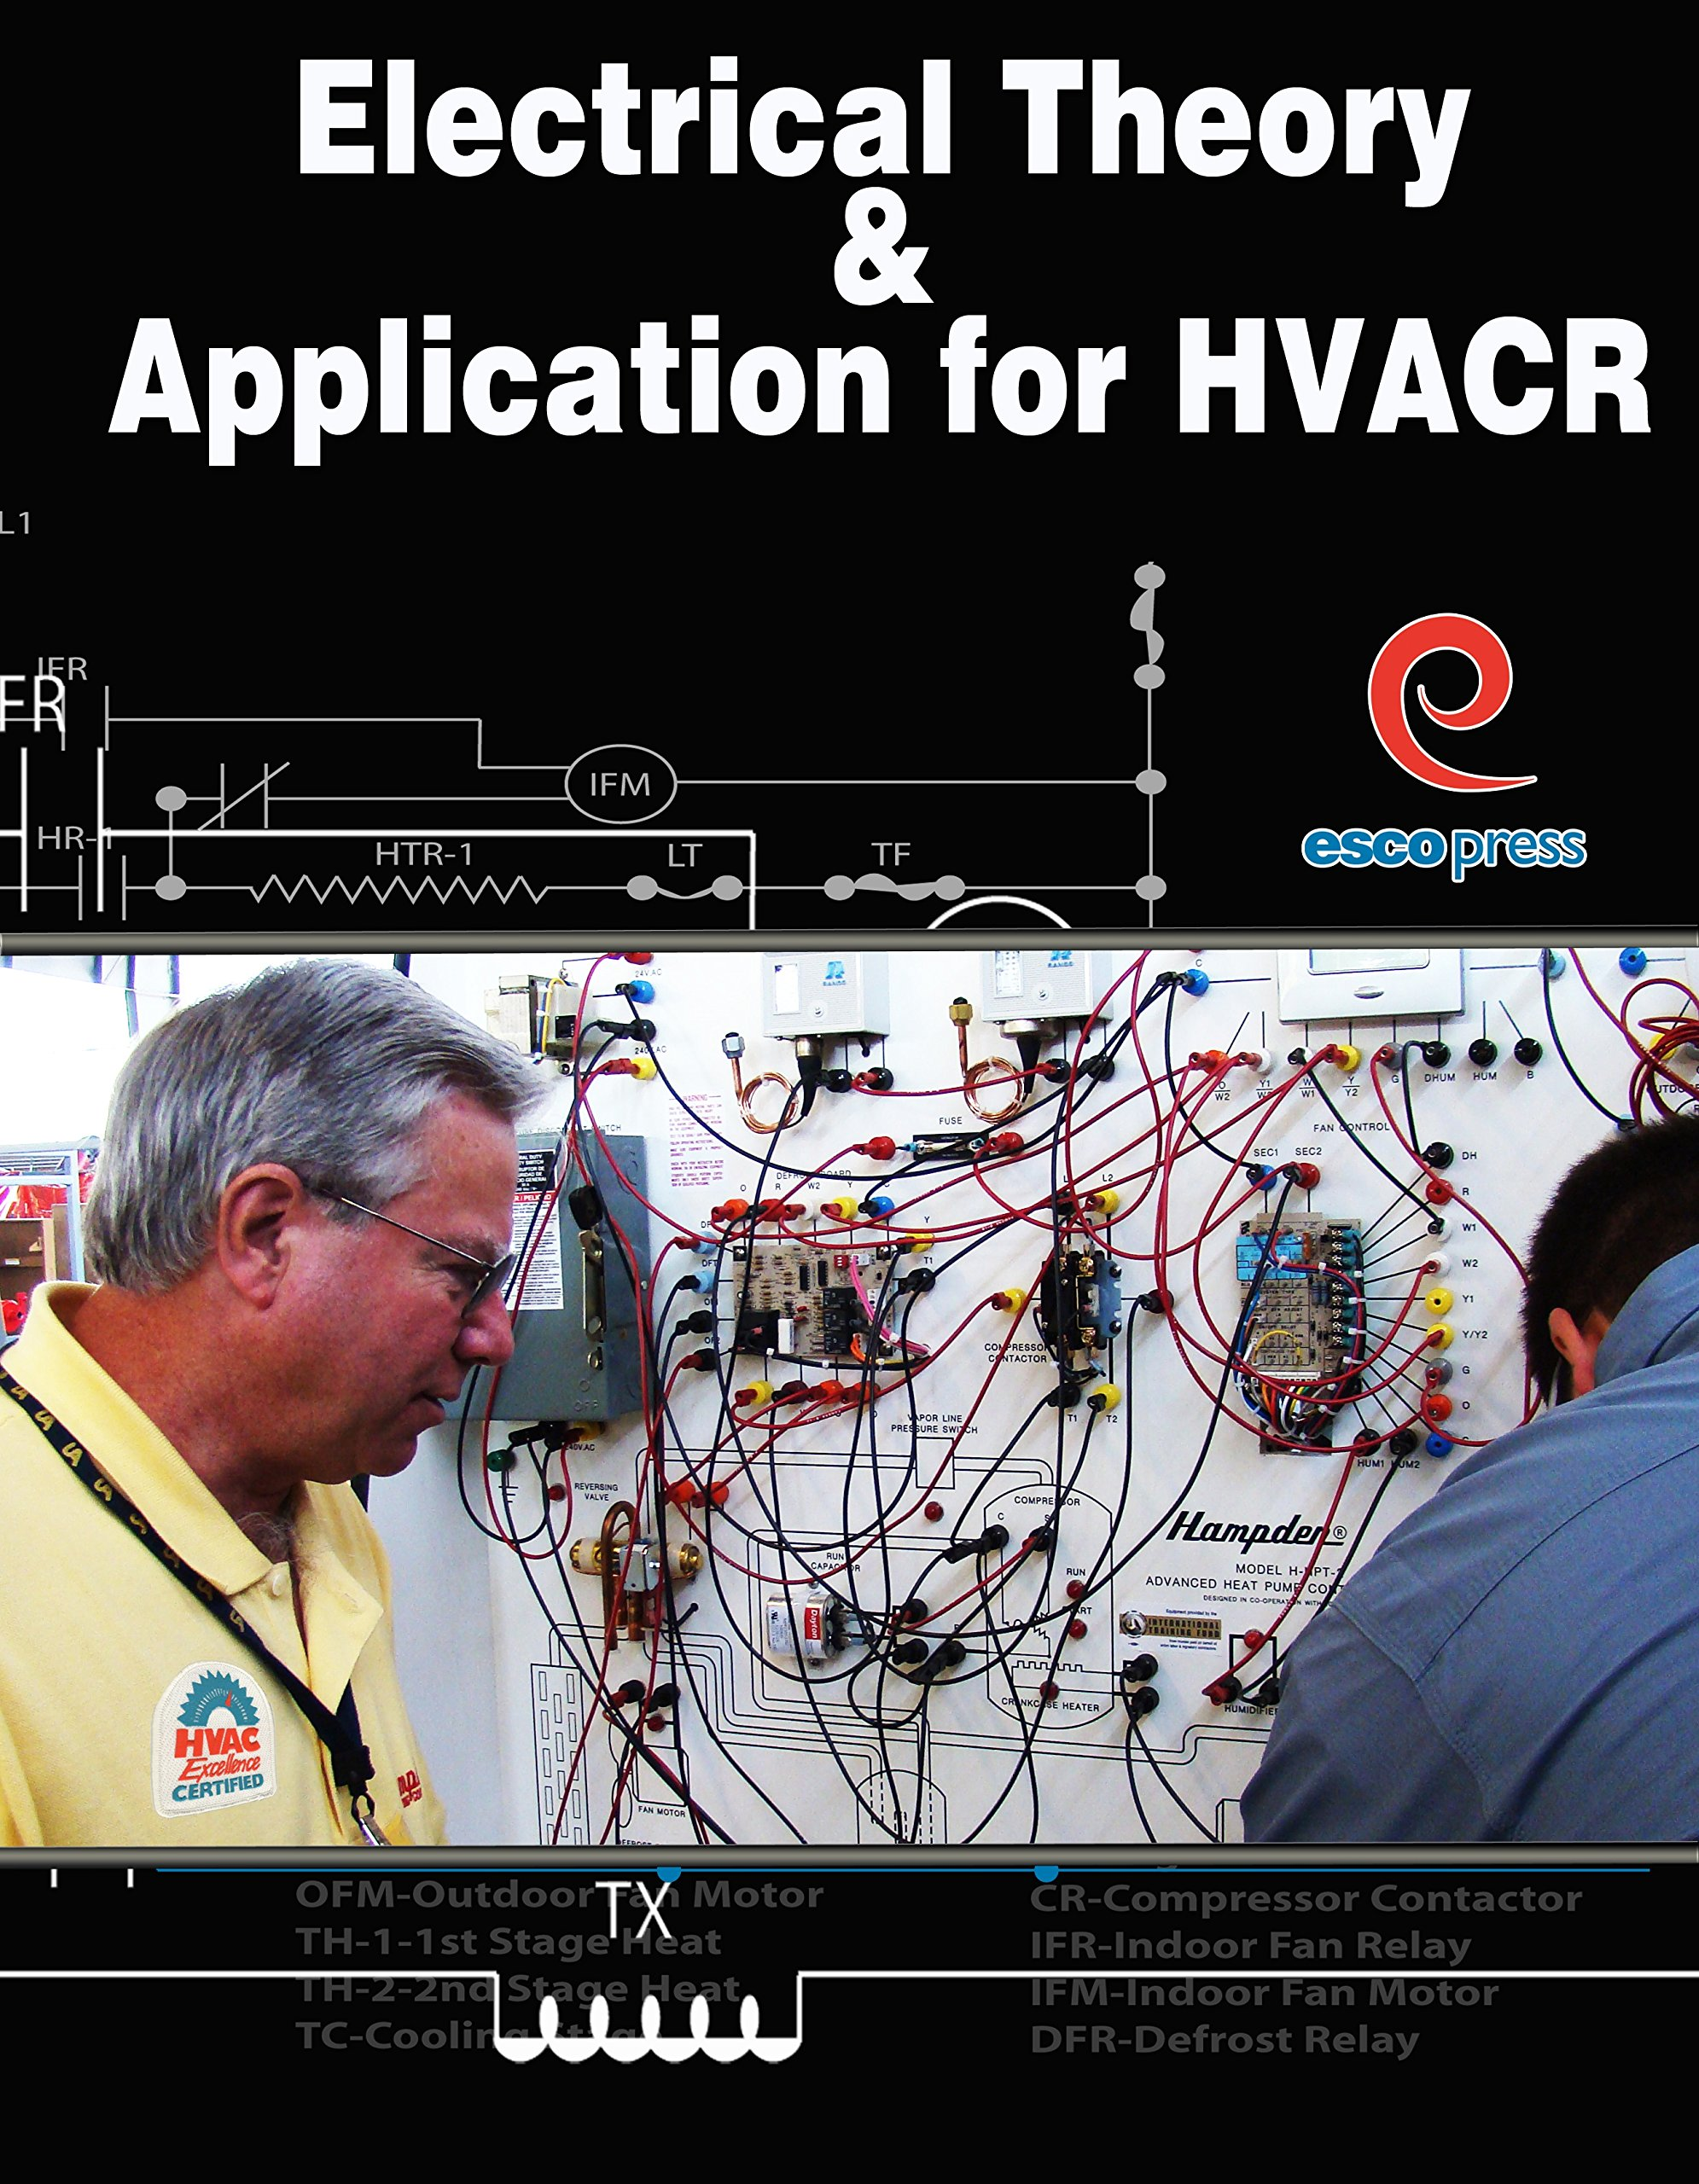 Electrical theory and application for hvacr randy petit earl electrical theory and application for hvacr randy petit earl delatte turner collins esco press 9781930044326 amazon books fandeluxe Images